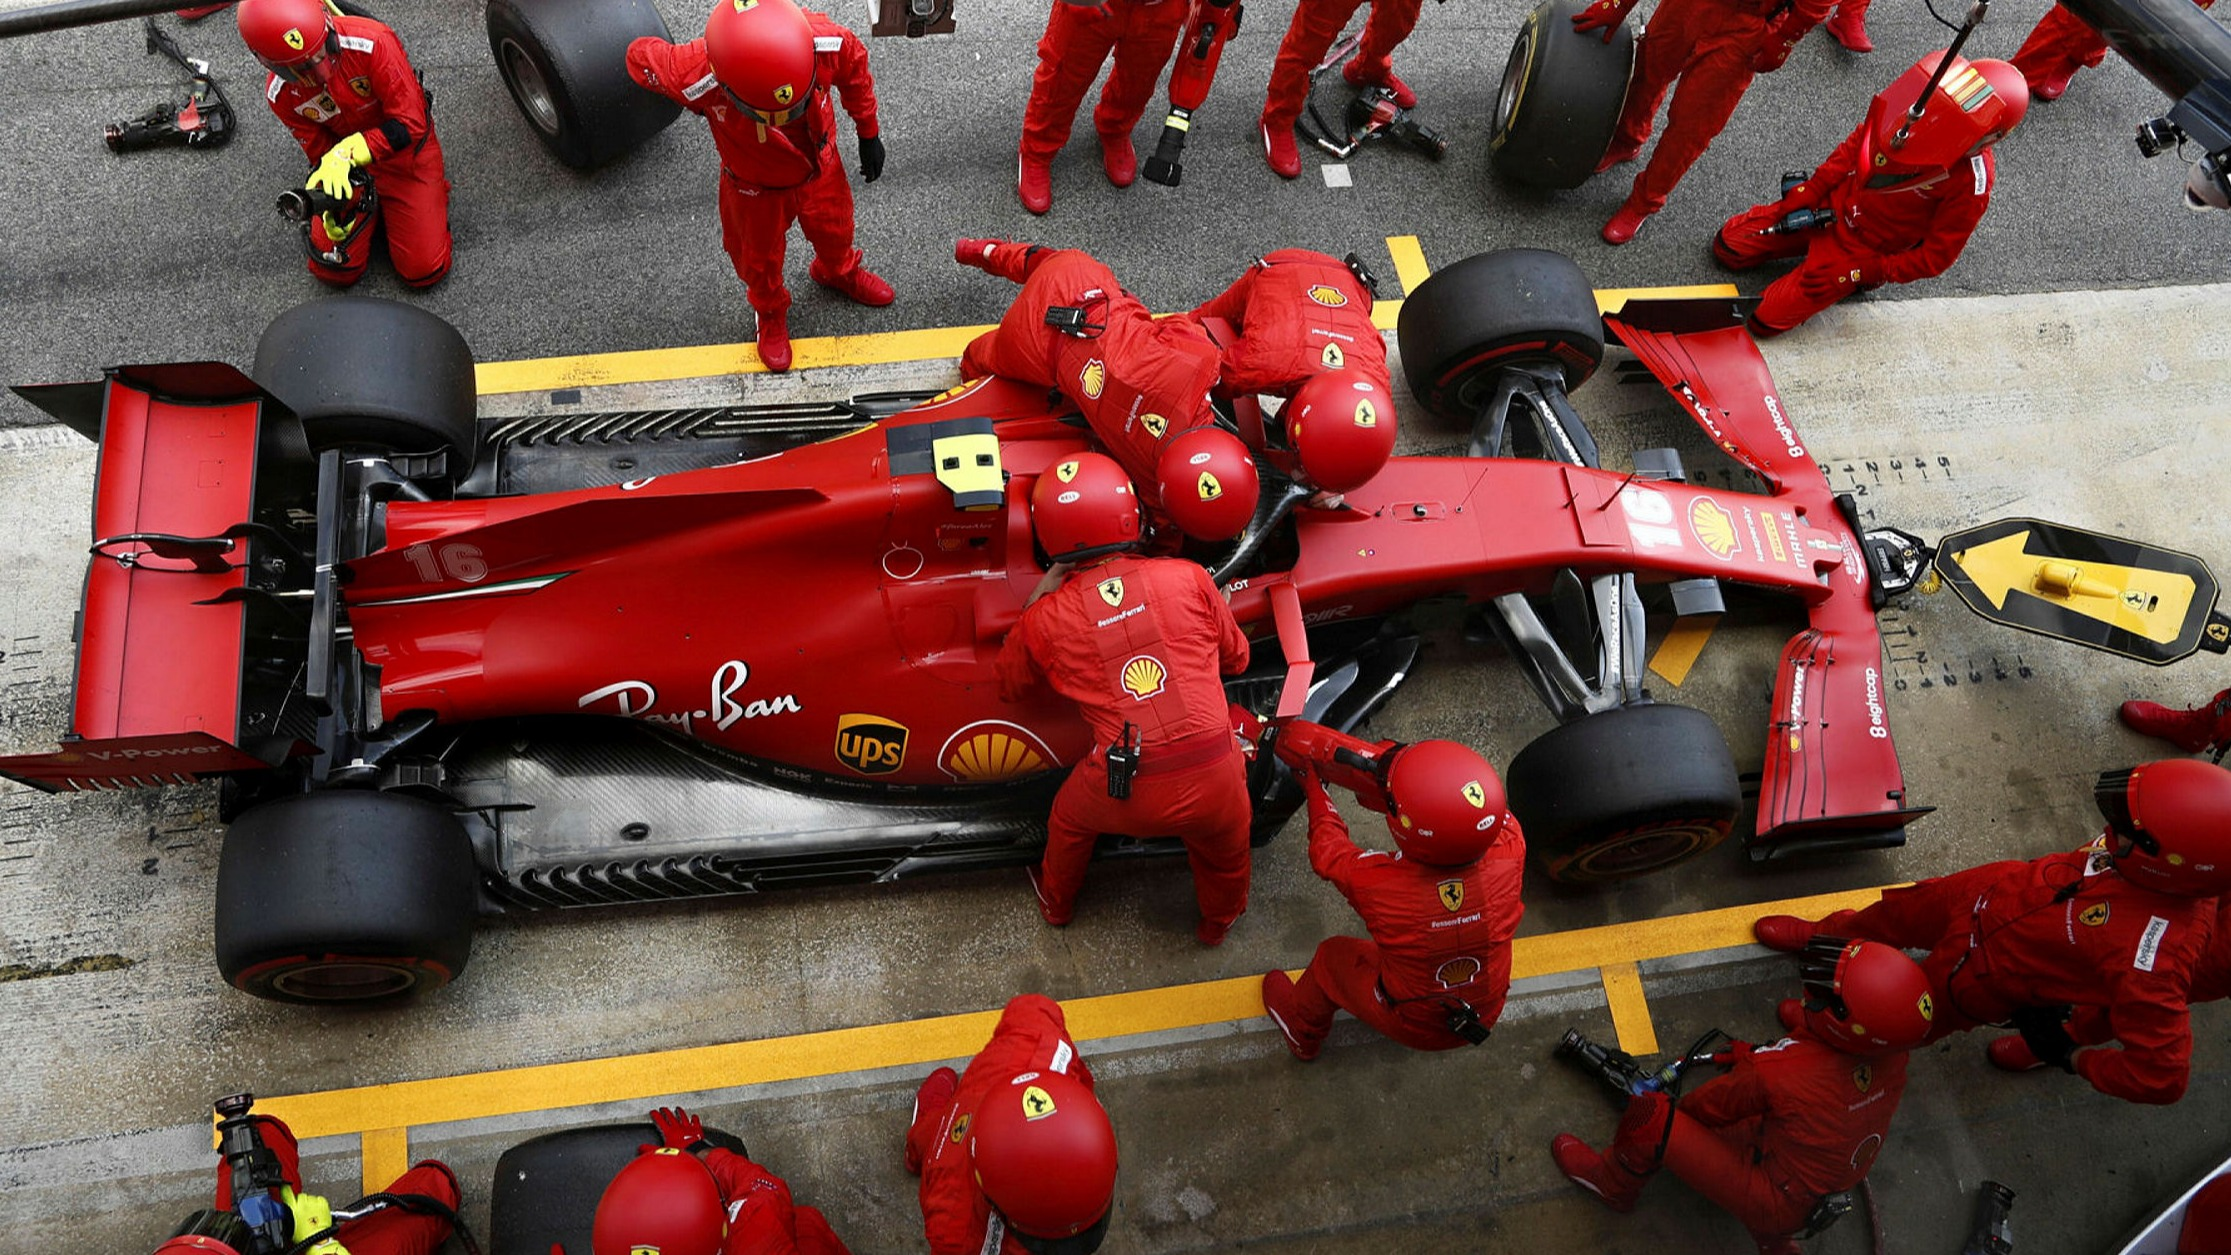 F1 Teams Reach New Deal With Owner Over Racing Series Revenues Financial Times